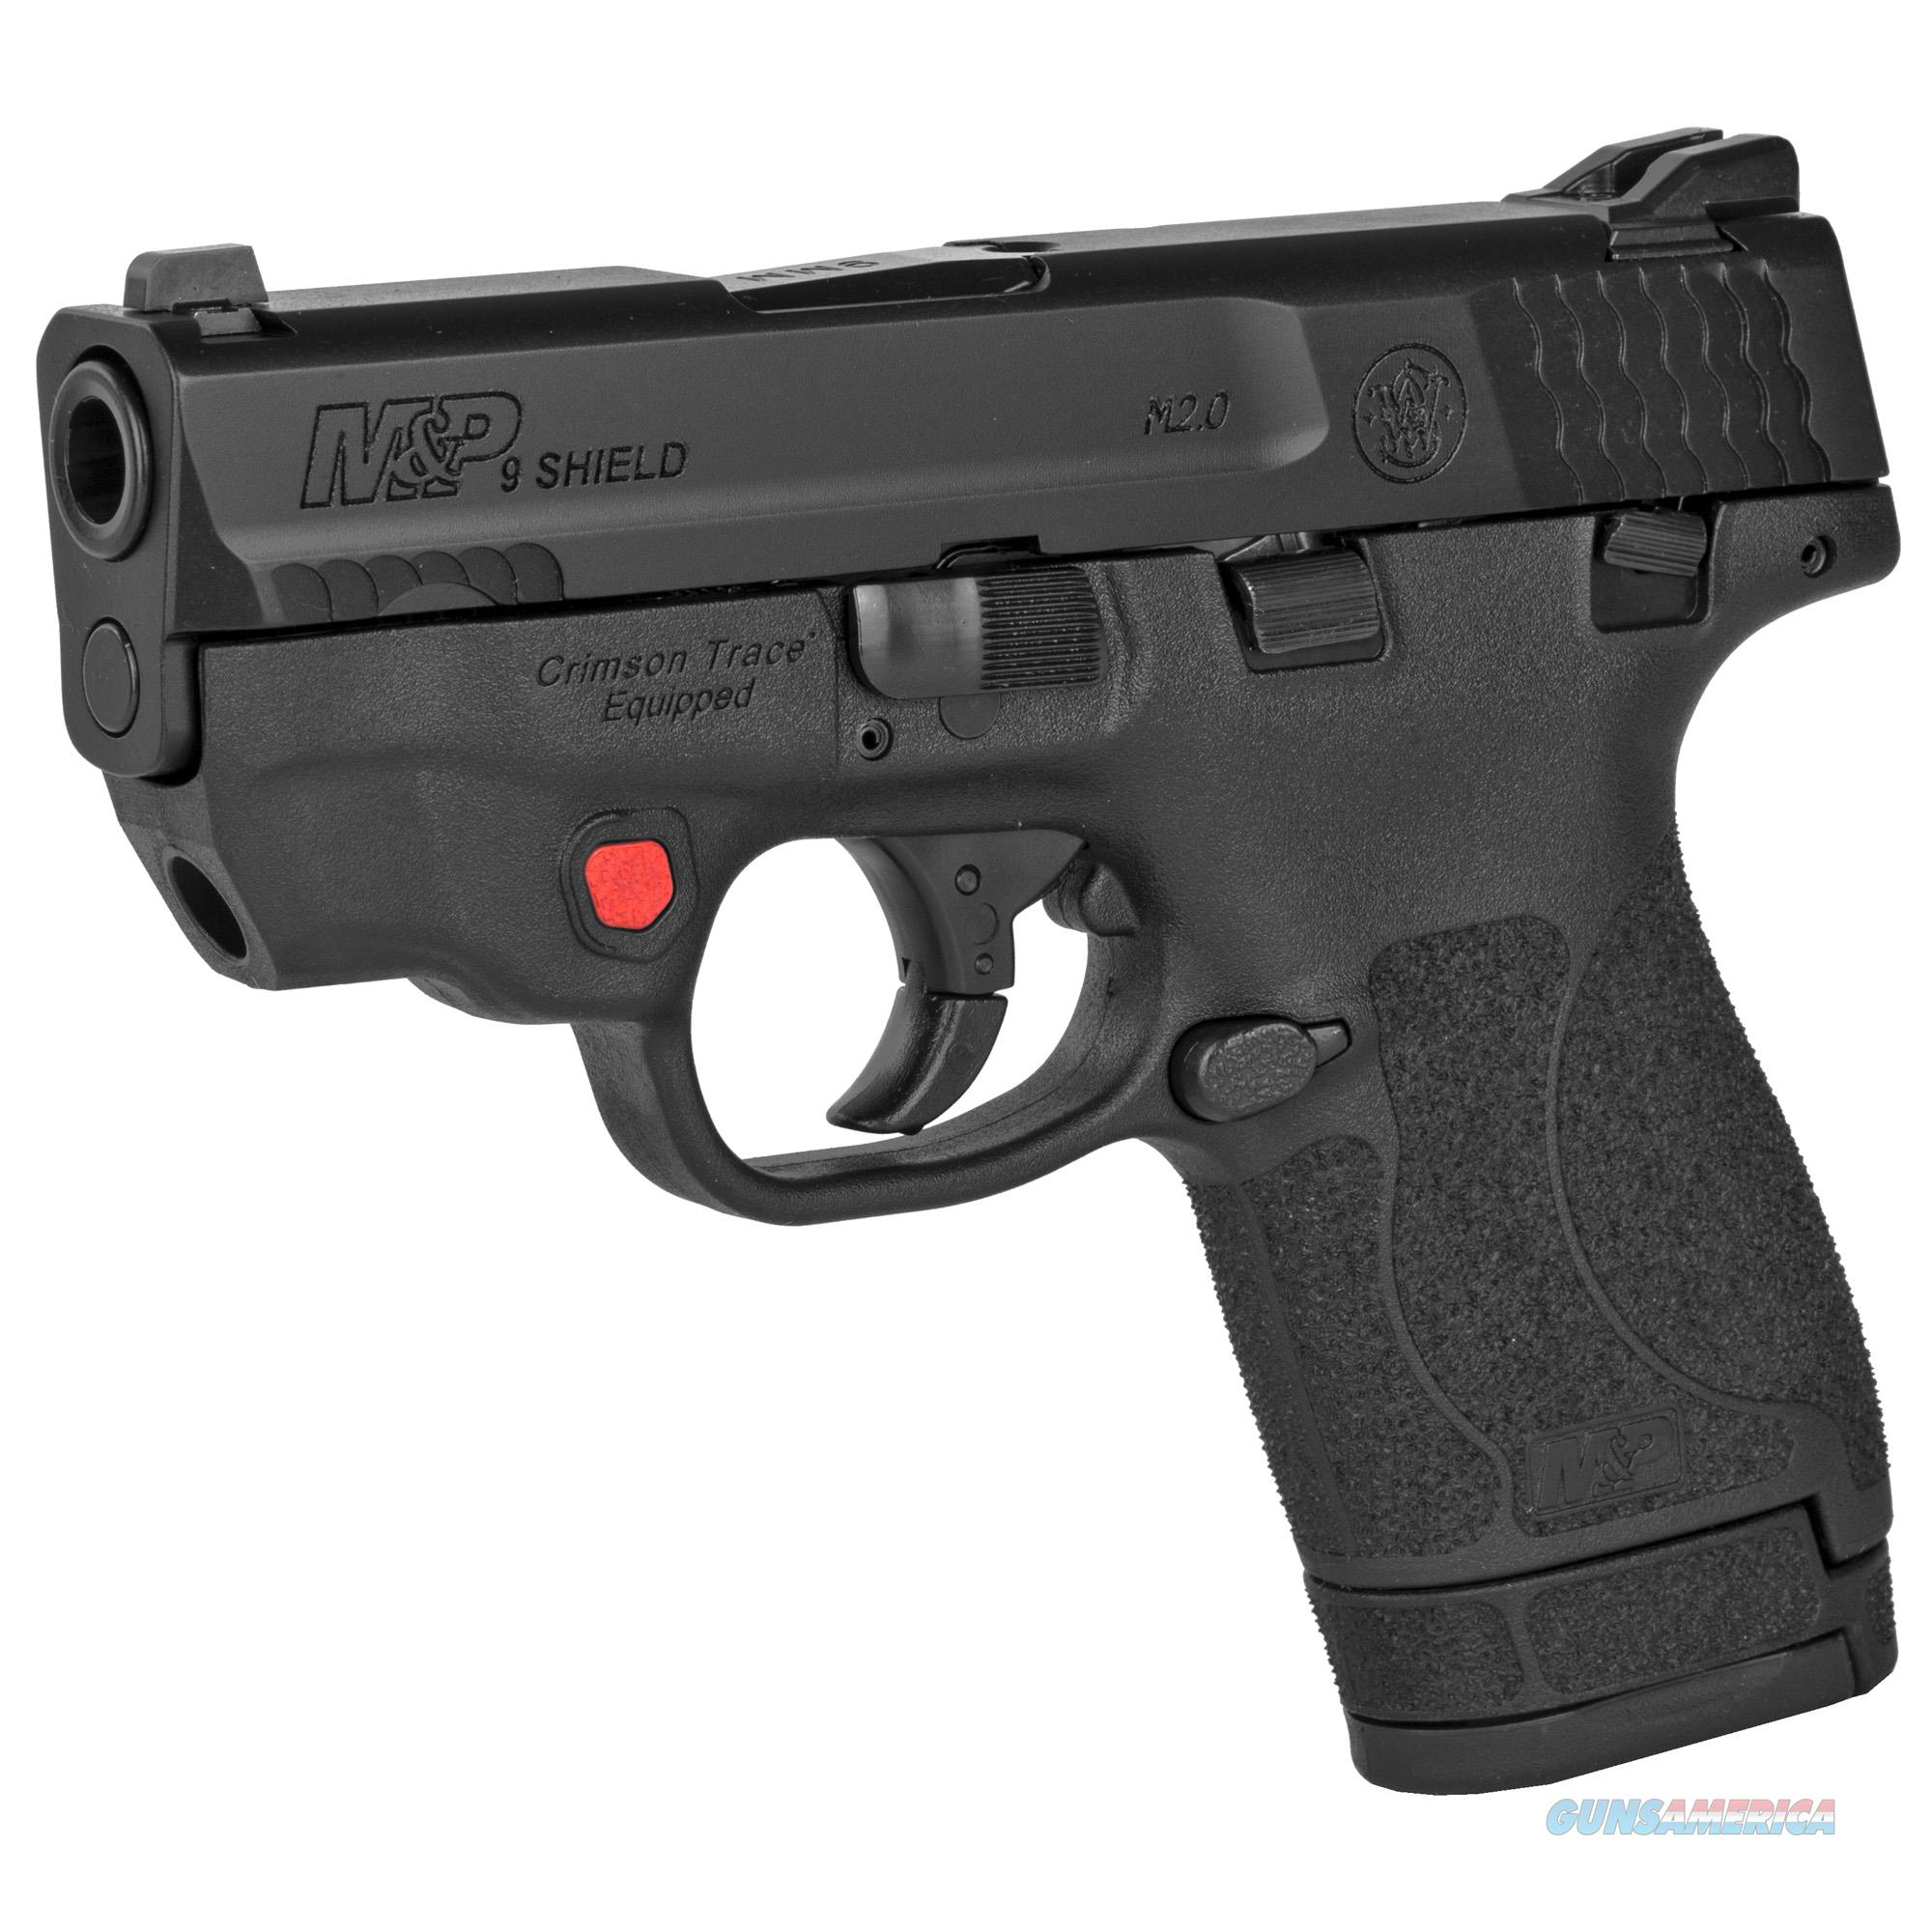 "Smith & Wesson M&P Shield M2.0 9mm Luger 3.1"" 7+1/8+1 - New in Case  Guns > Pistols > Smith & Wesson Pistols - Autos > Shield"